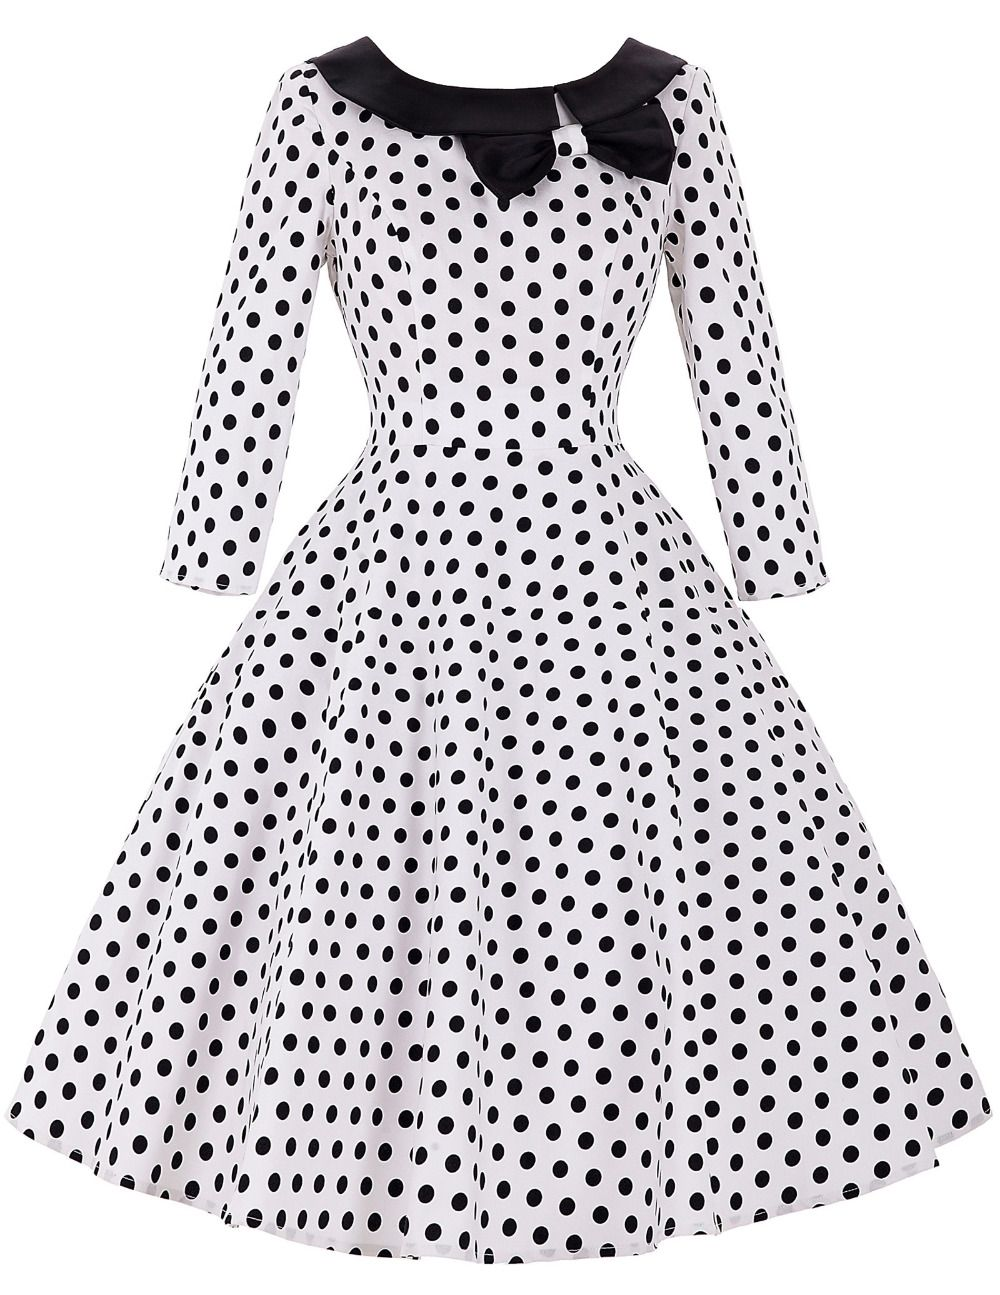 Long Sleeve 50s Rockabilly Dresses 2016 Autumn Winter Vintage ...